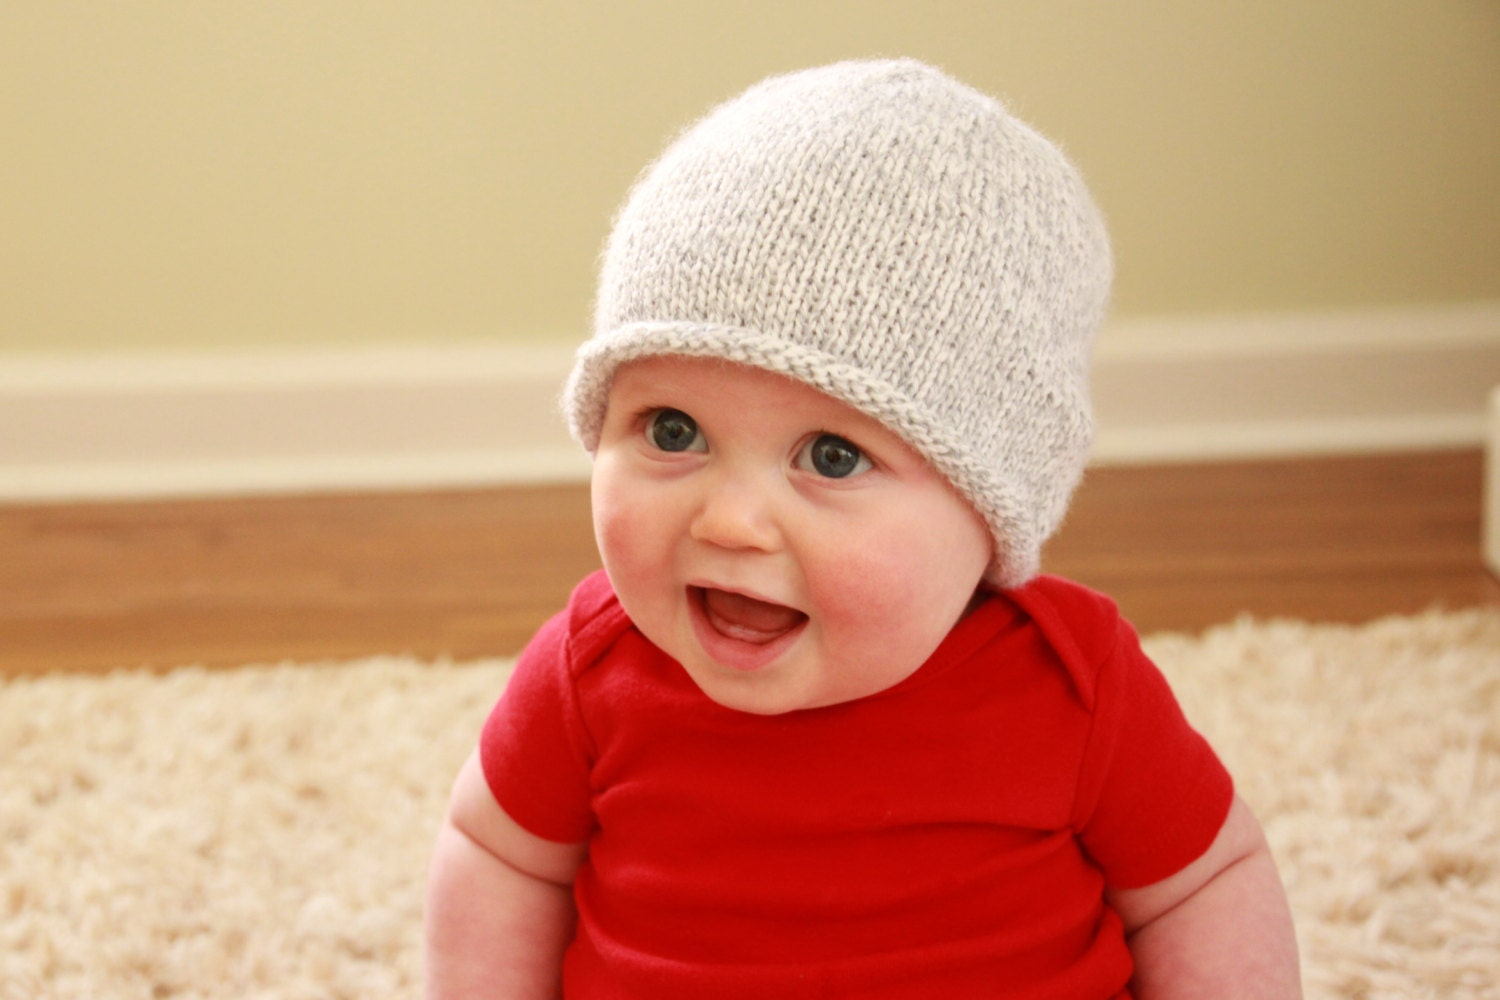 Knitting Pattern For Rolled Brim Baby Hat : Hand Knitted Rolled Brim Baby Hat: Bright Blue or by ...